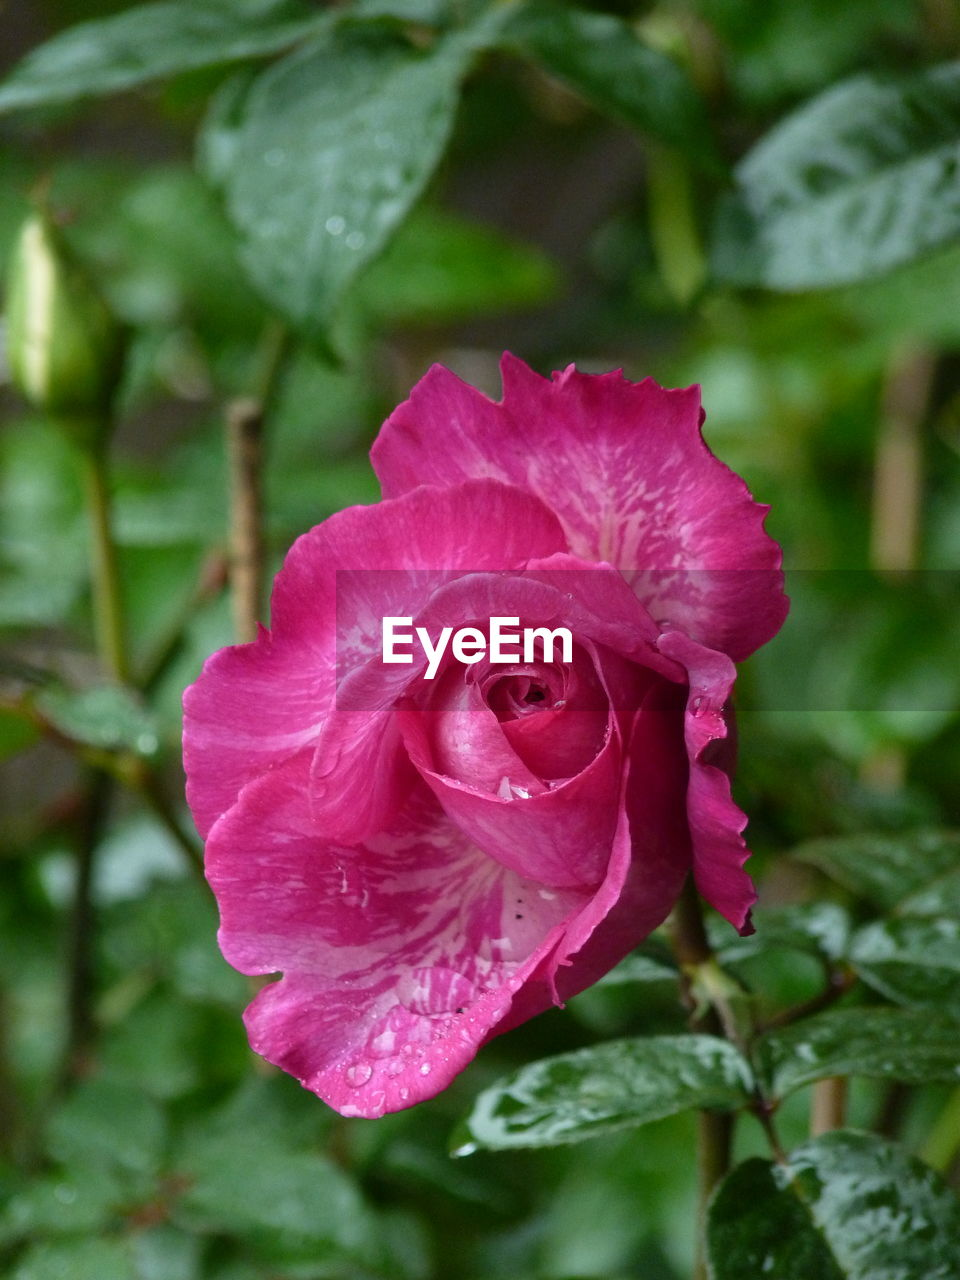 flower, petal, nature, growth, plant, rose - flower, flower head, fragility, drop, beauty in nature, pink color, wet, no people, freshness, water, blooming, outdoors, close-up, leaf, day